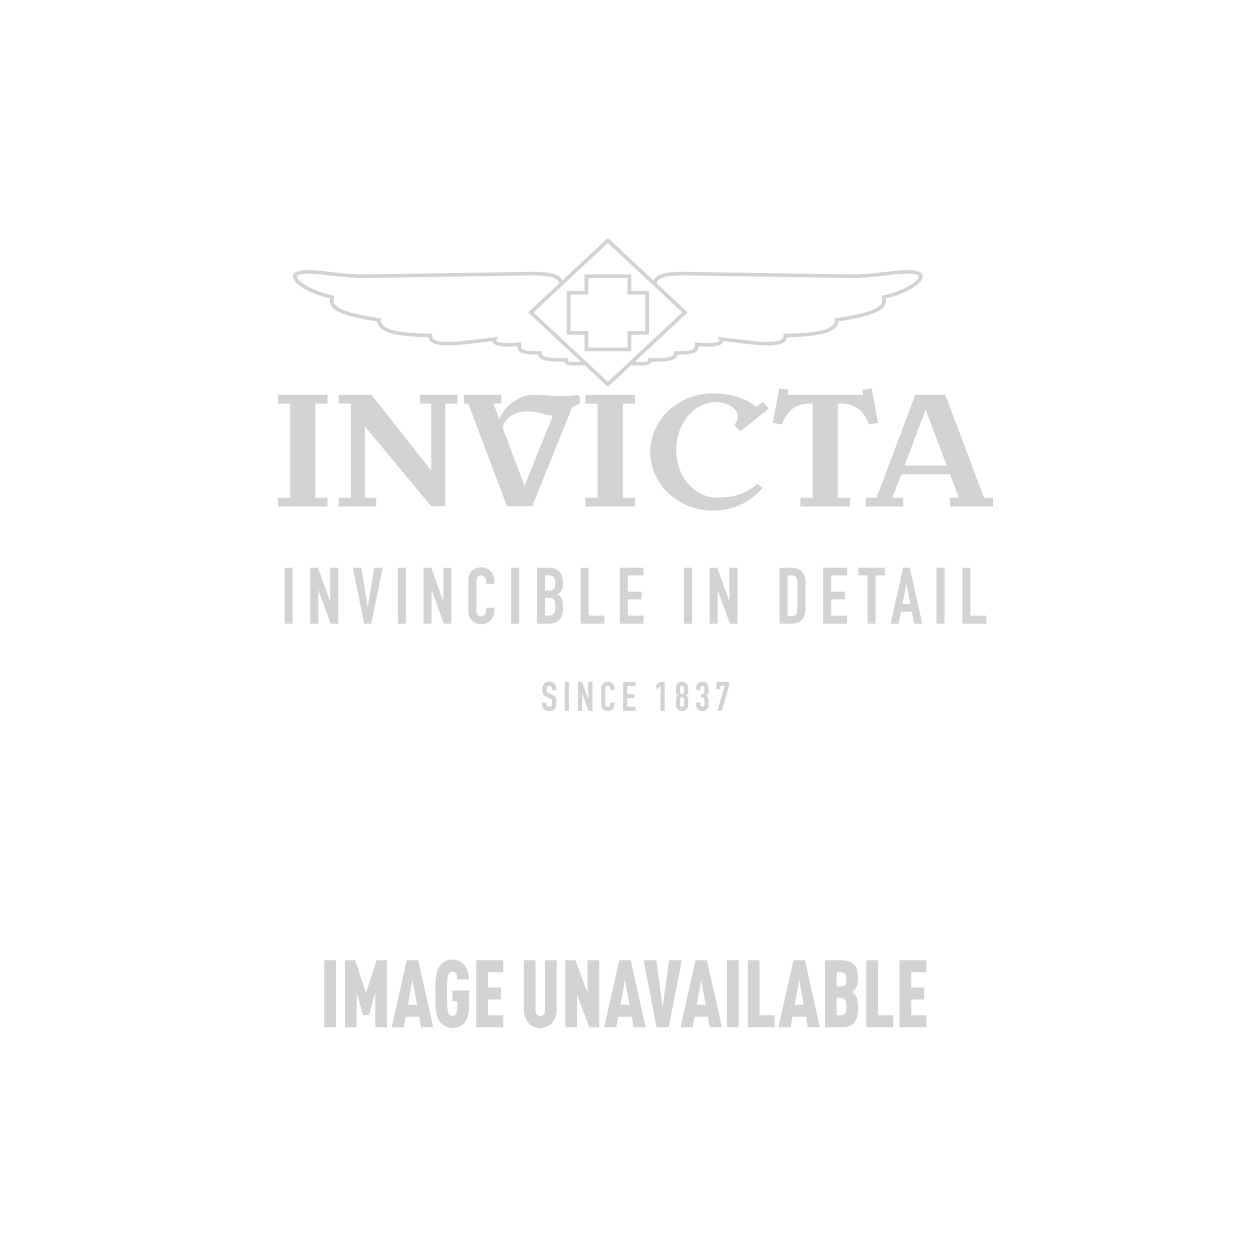 Invicta Corduba Swiss Movement Quartz Watch - Stainless Steel case Stainless Steel band - Model 17097